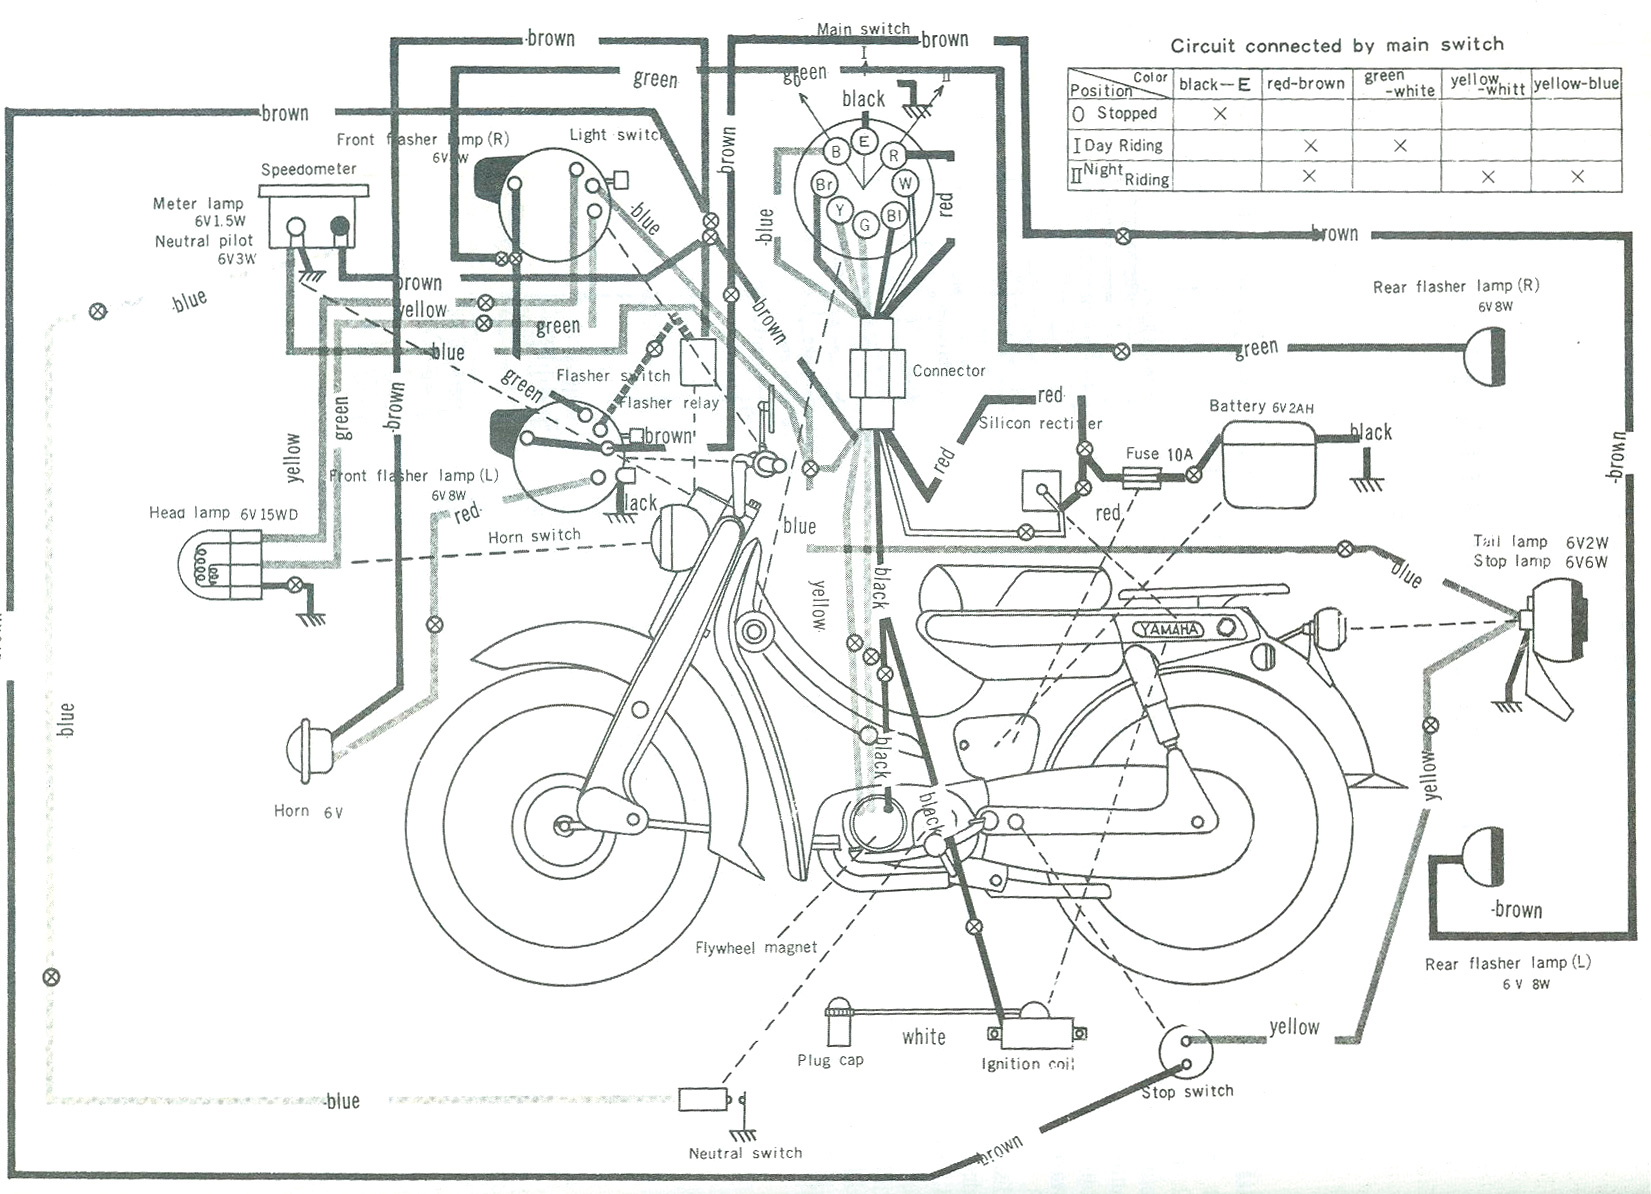 u5e_wiring u5e] motorcycle wiring schematics diagram 1978 yamaha dt 175 wiring diagram at cos-gaming.co